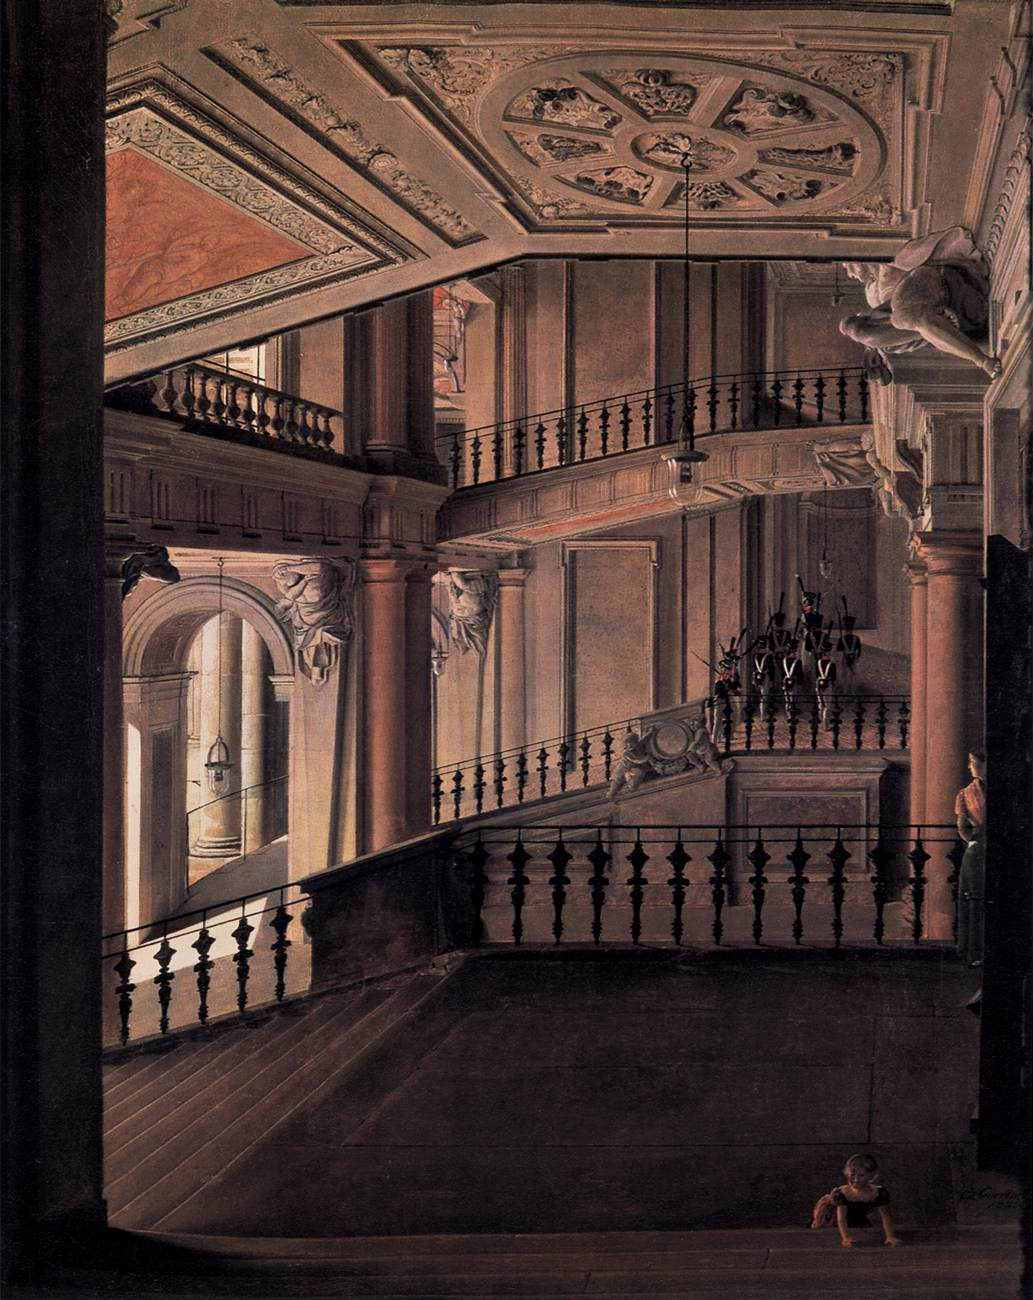 Staircase in the Berlin Palace